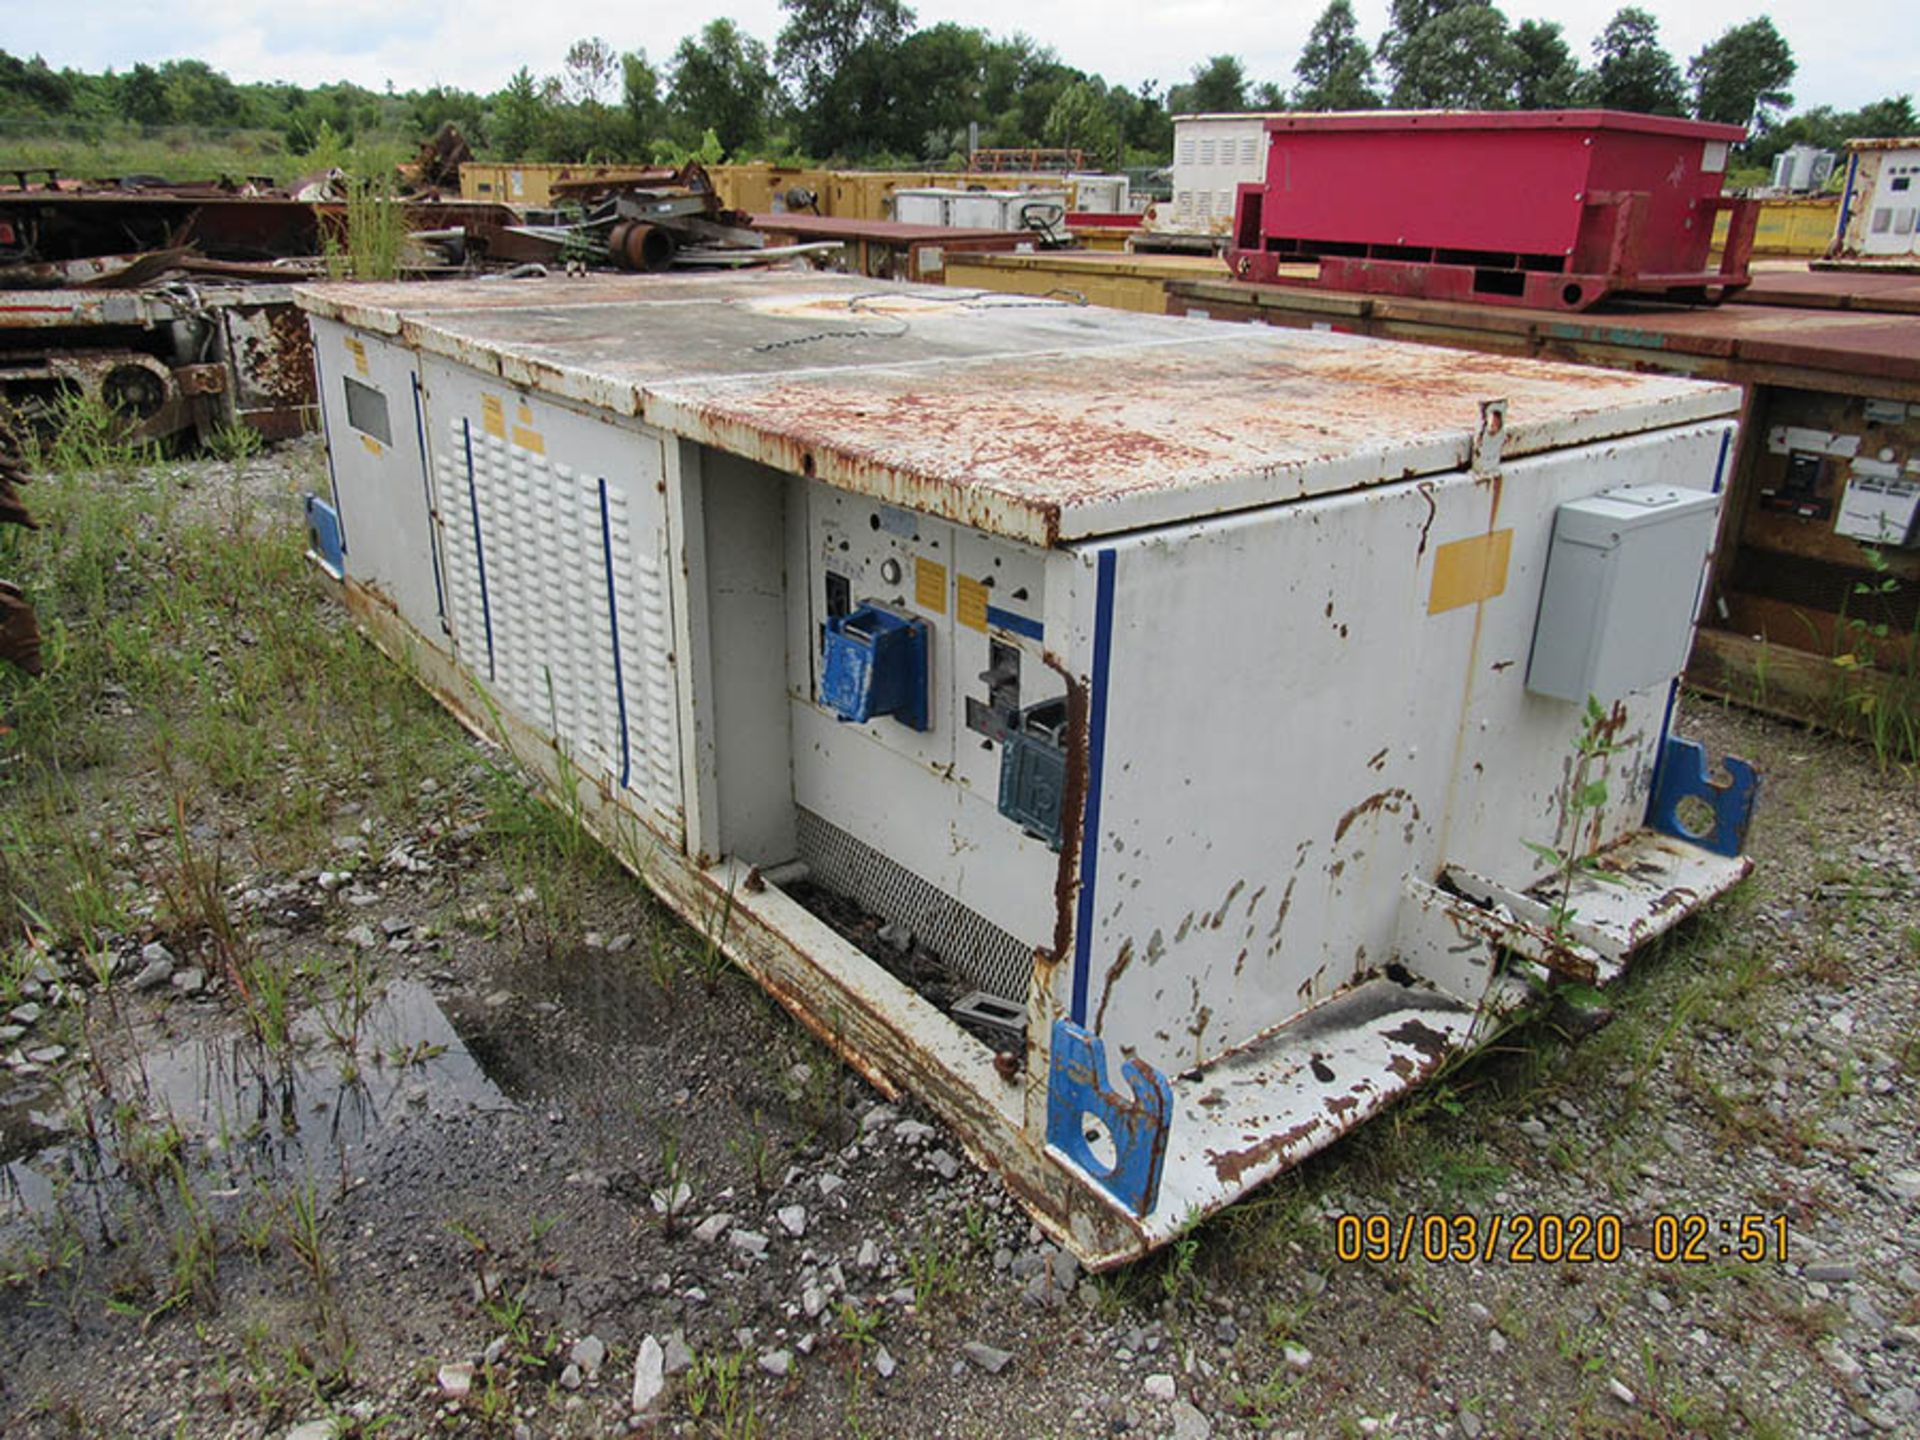 Lot 739 - LINE POWER CO. MODEL 300 PBC POWER CENTER, S/N 5895, 12470 VAC. 30 60 HZ IN, AC POWER OUT 480 VAC 30